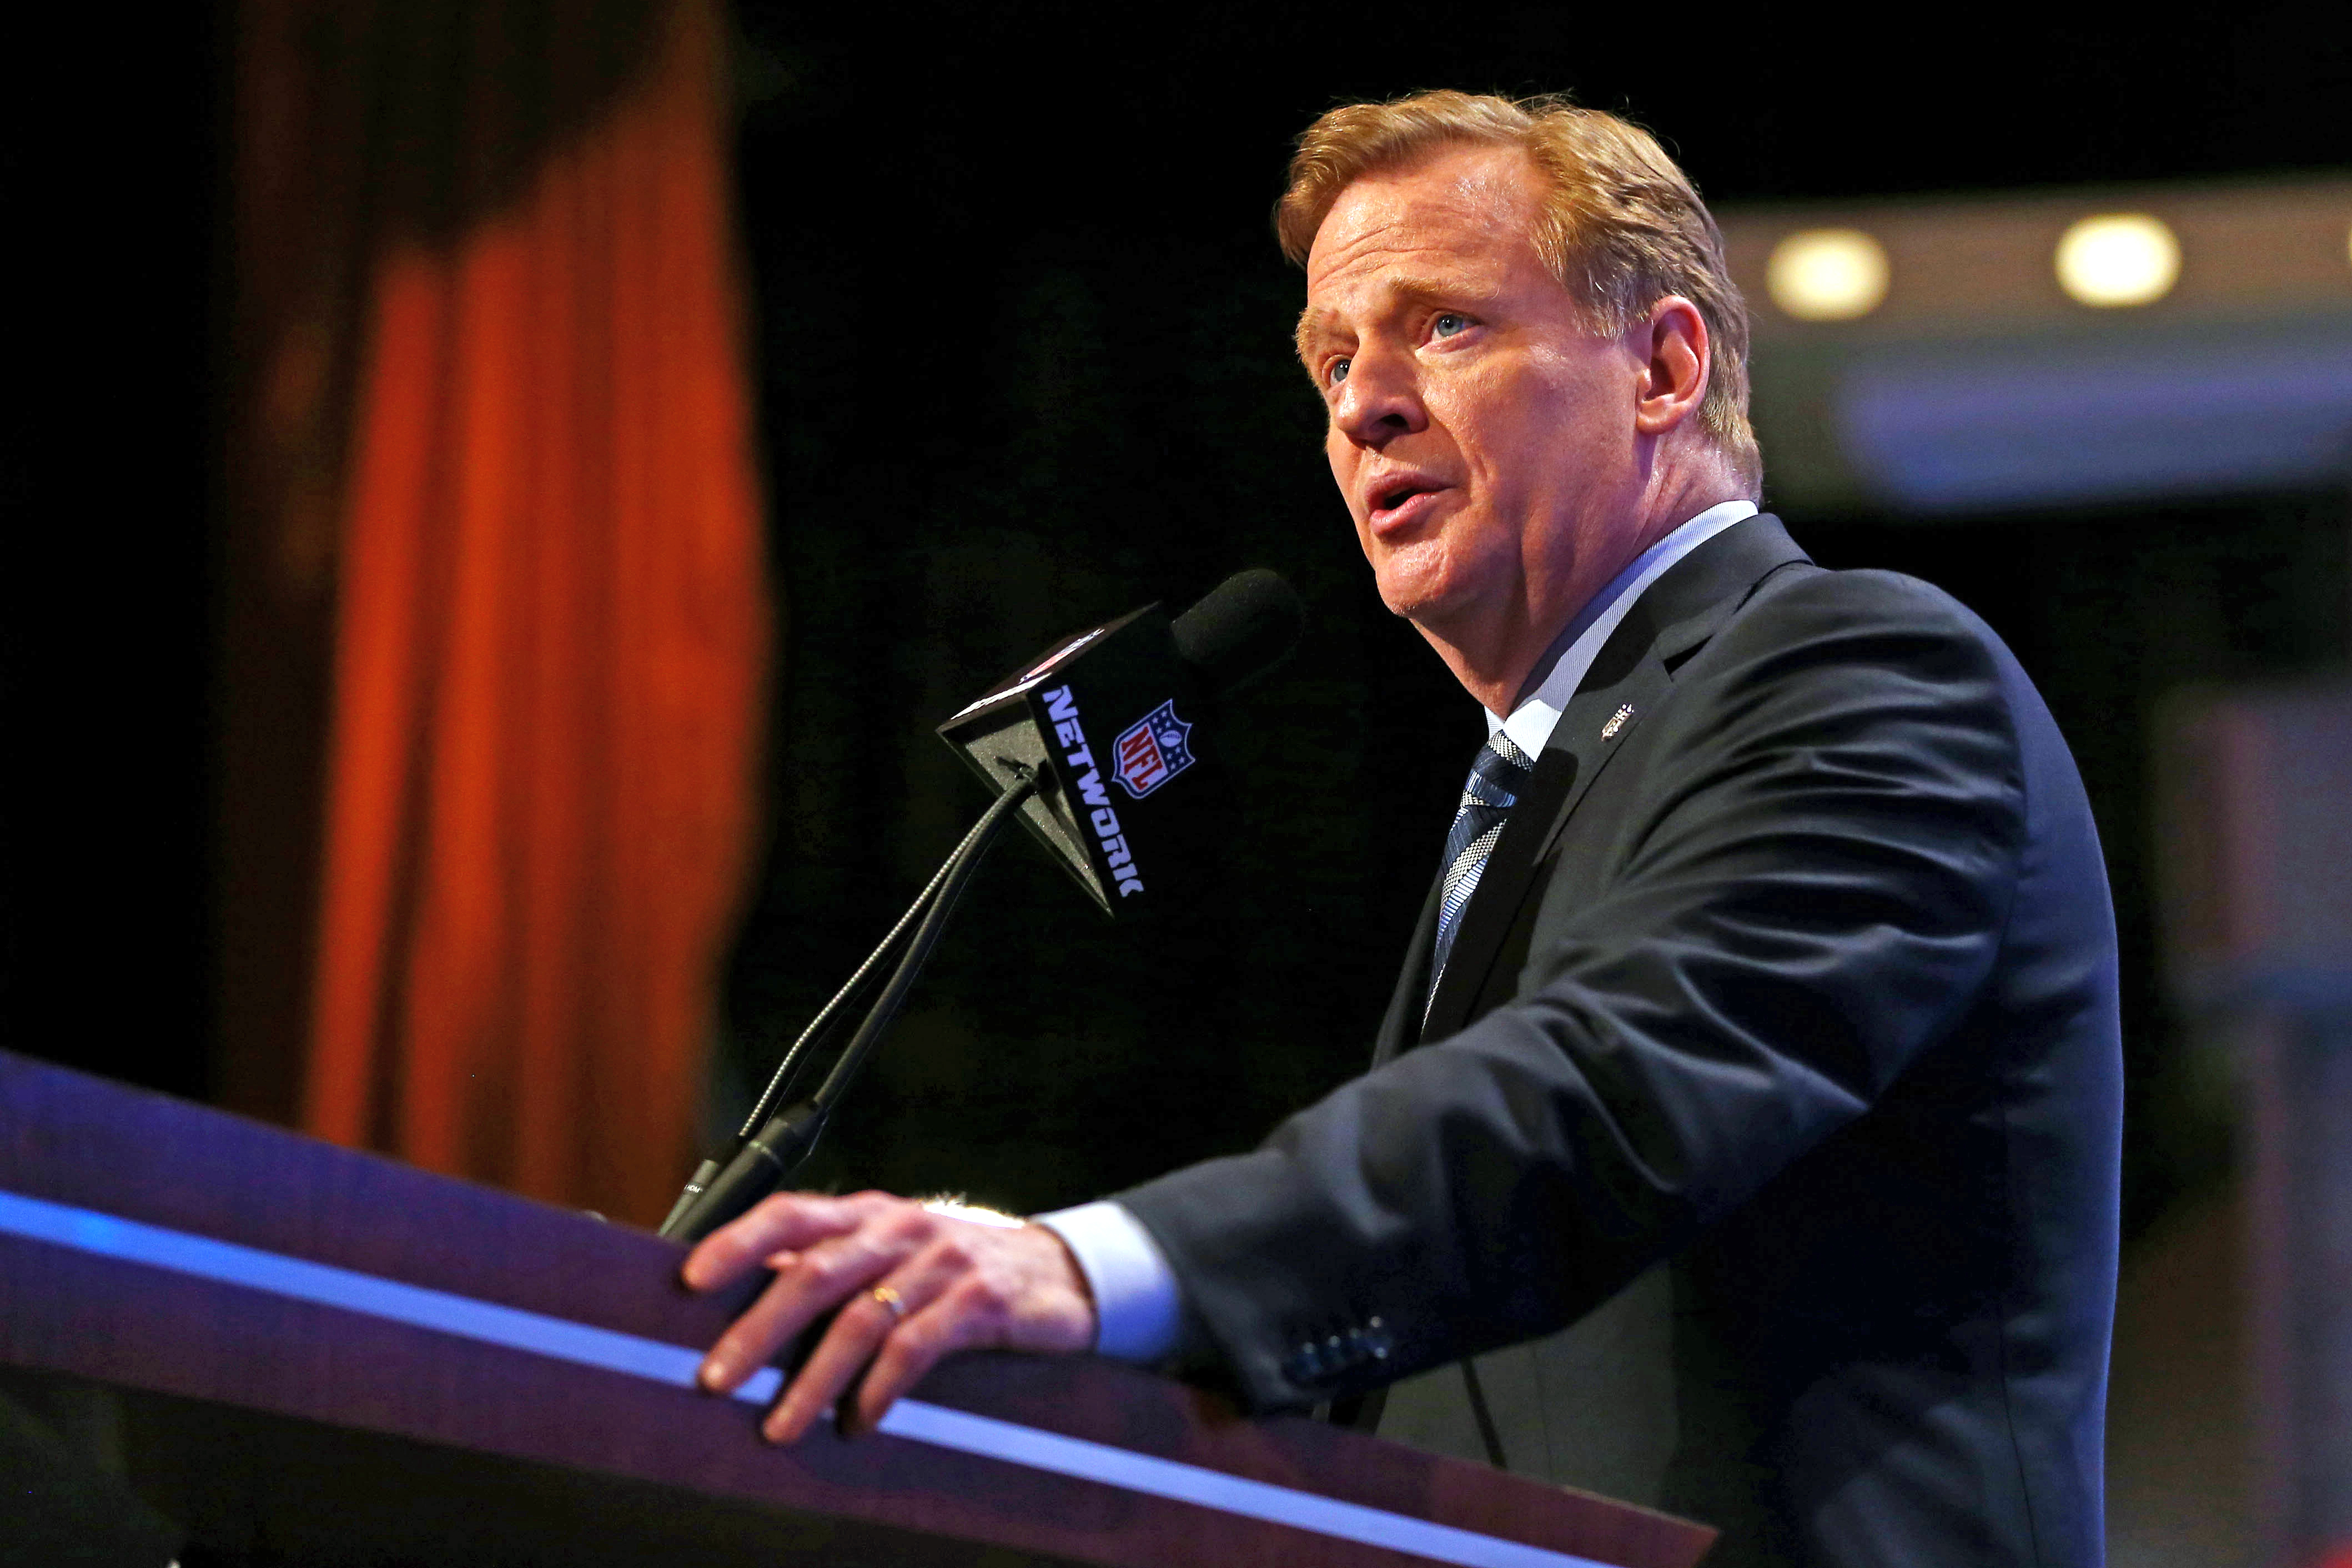 NFL Commissioner Roger Goodell speaks during the first round of the 2014 NFL Draft at Radio City Music Hall on May 8, 2014 in New York City.